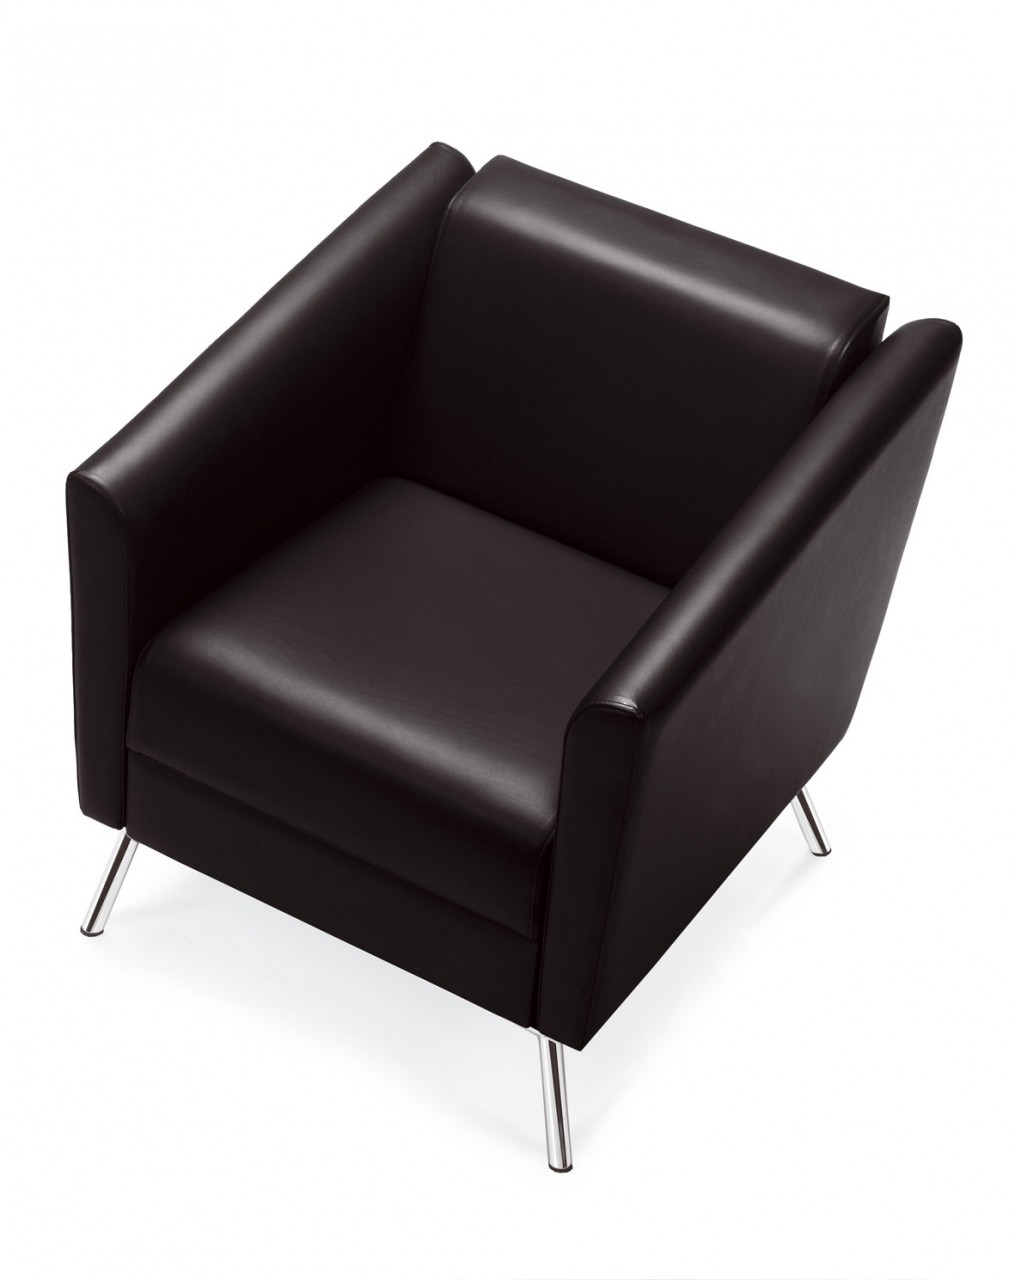 Chauffeuse wind achat fauteuils 490 00 for Housse pour chauffeuse 1 place